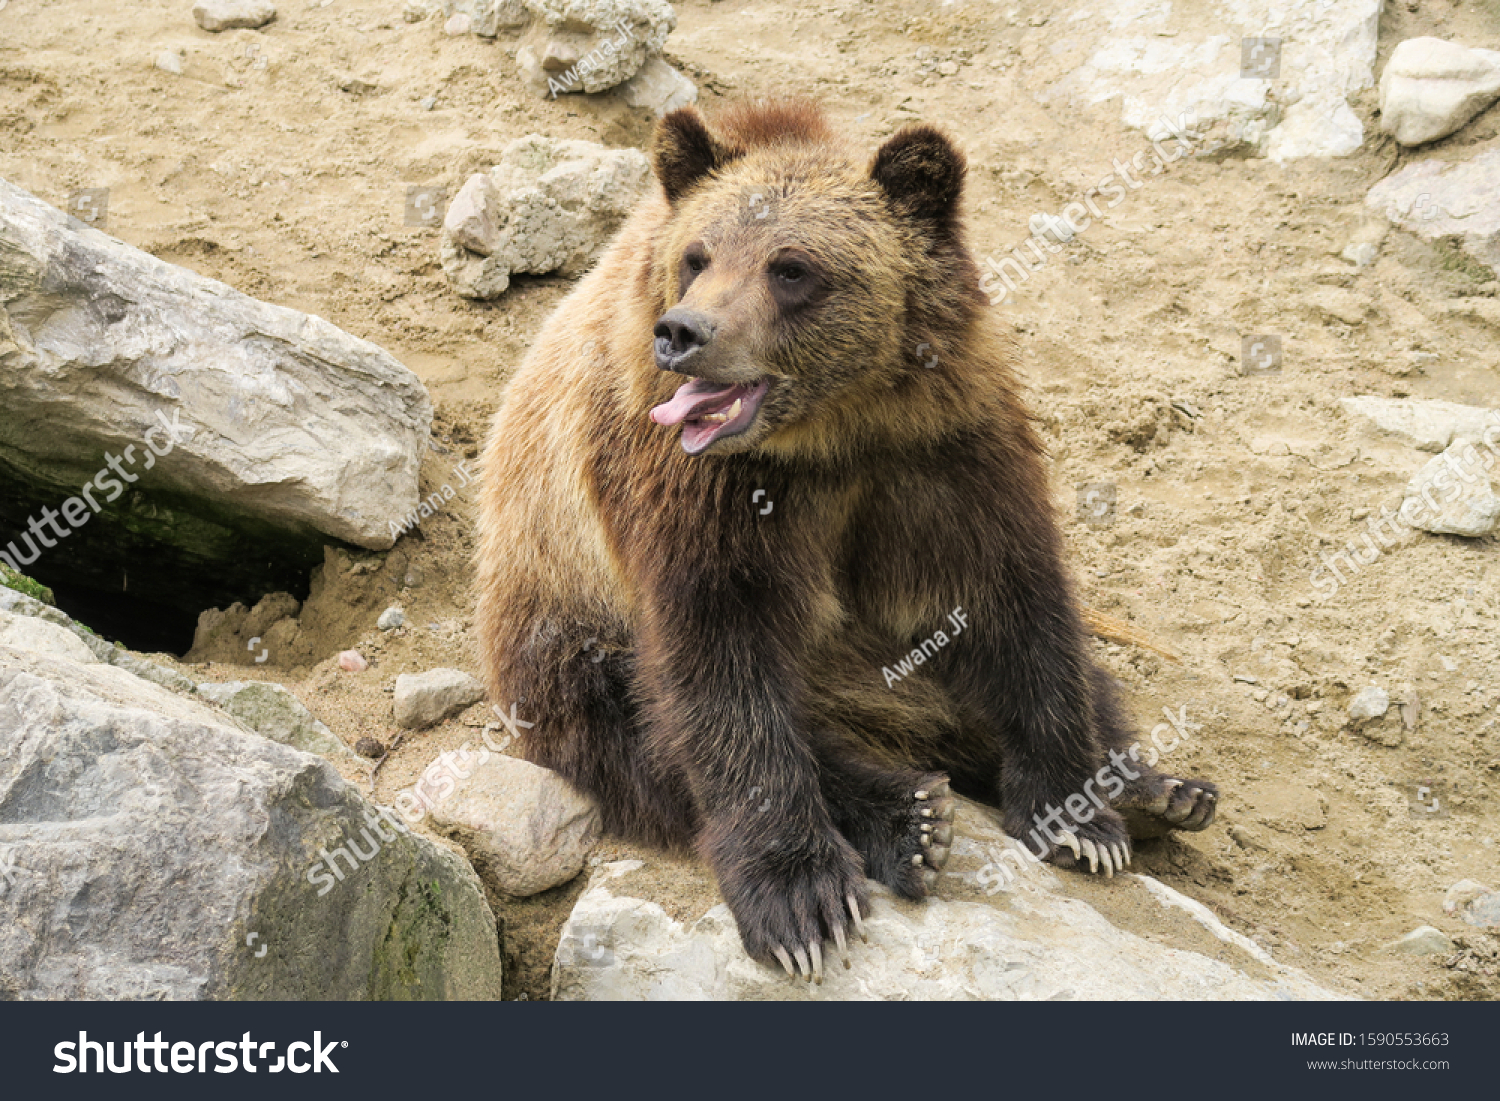 stock-photo-grizzly-bear-sitting-on-a-ro